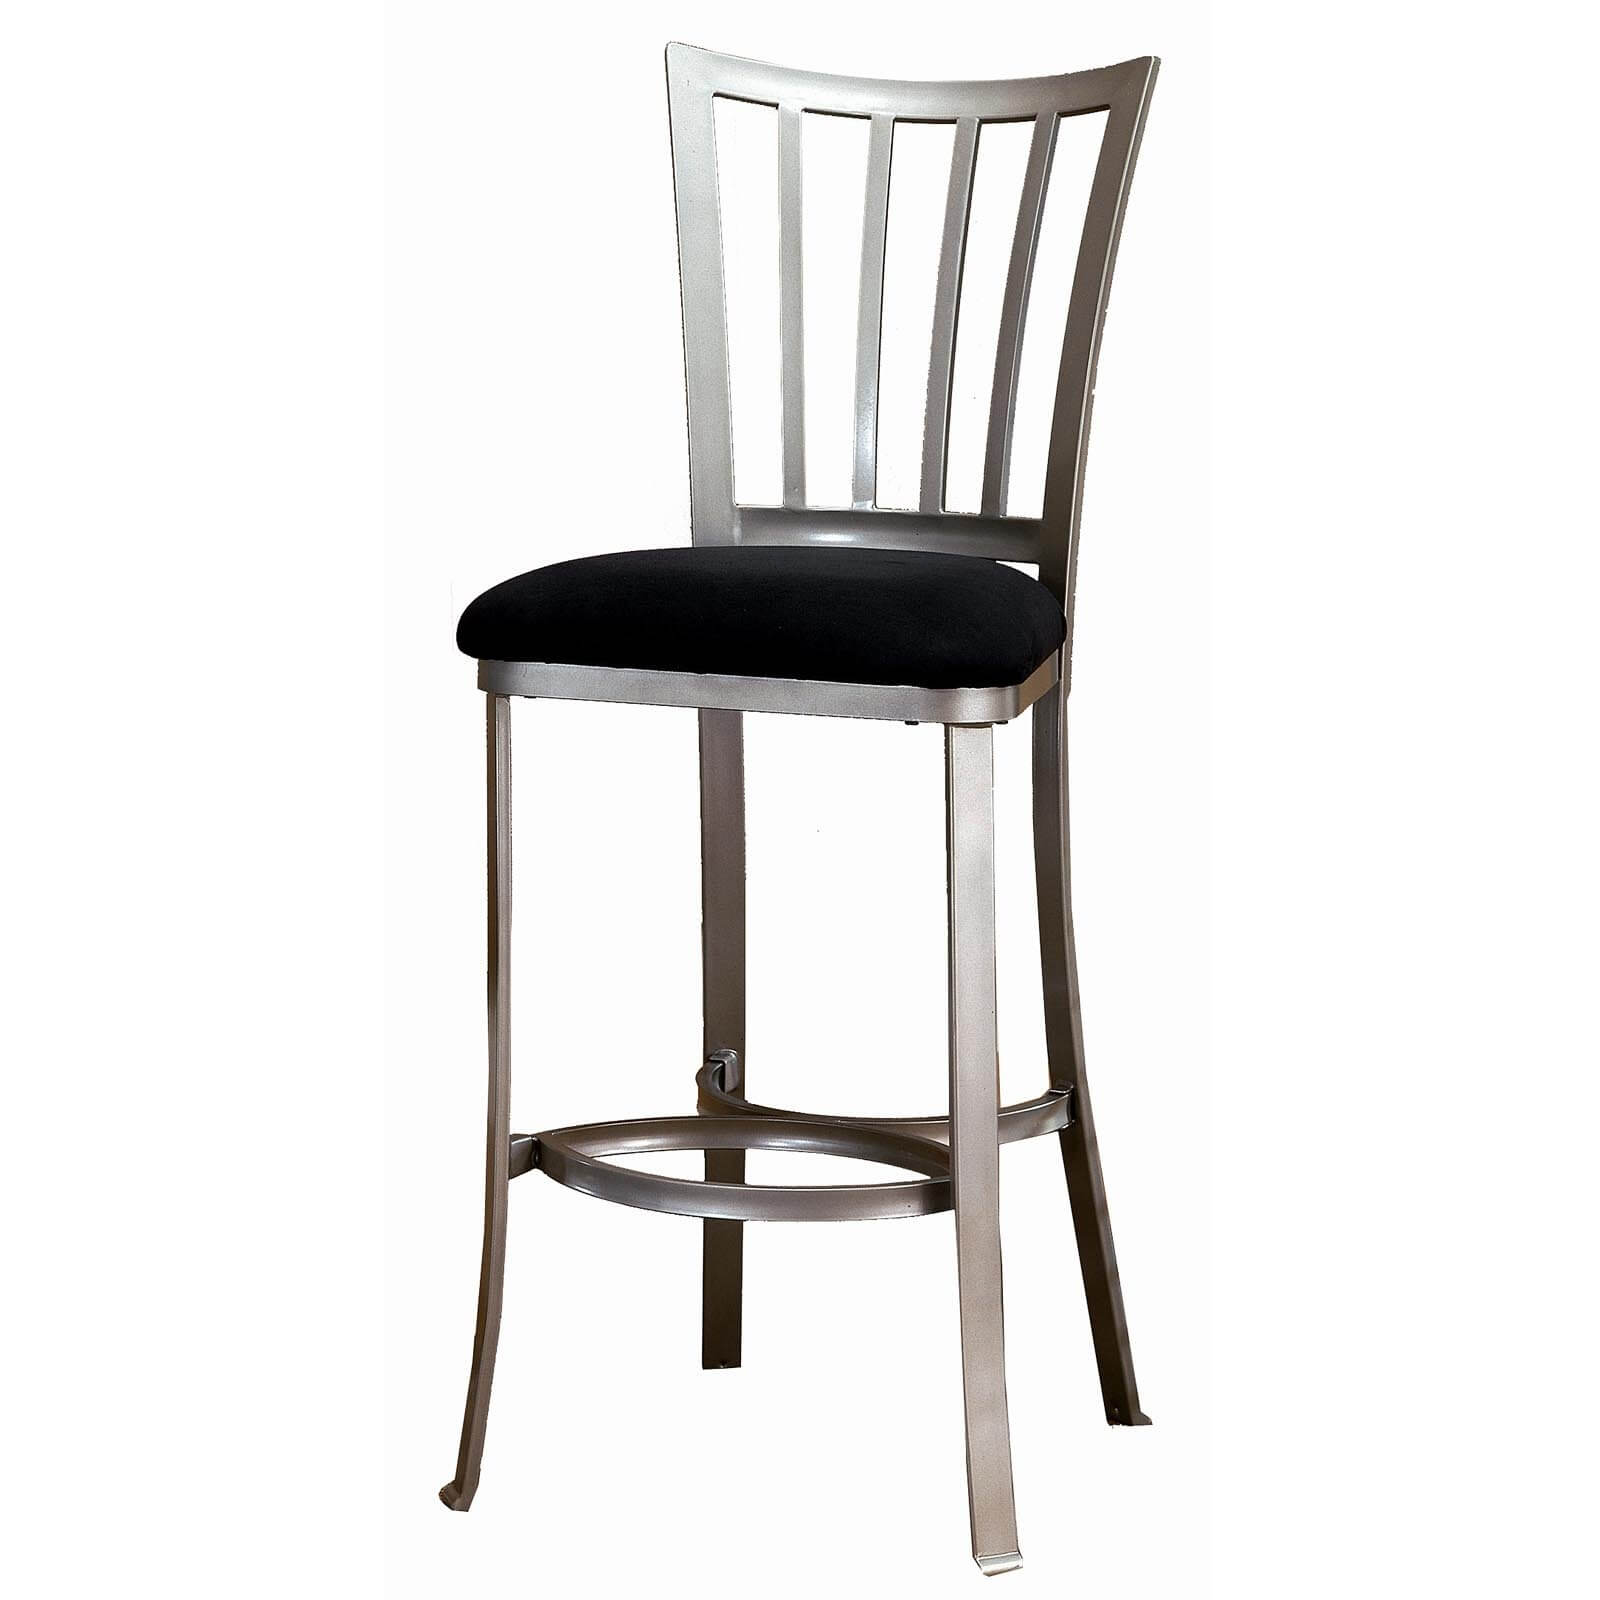 Metal framed armless stool with a metal back and cushioned seat.